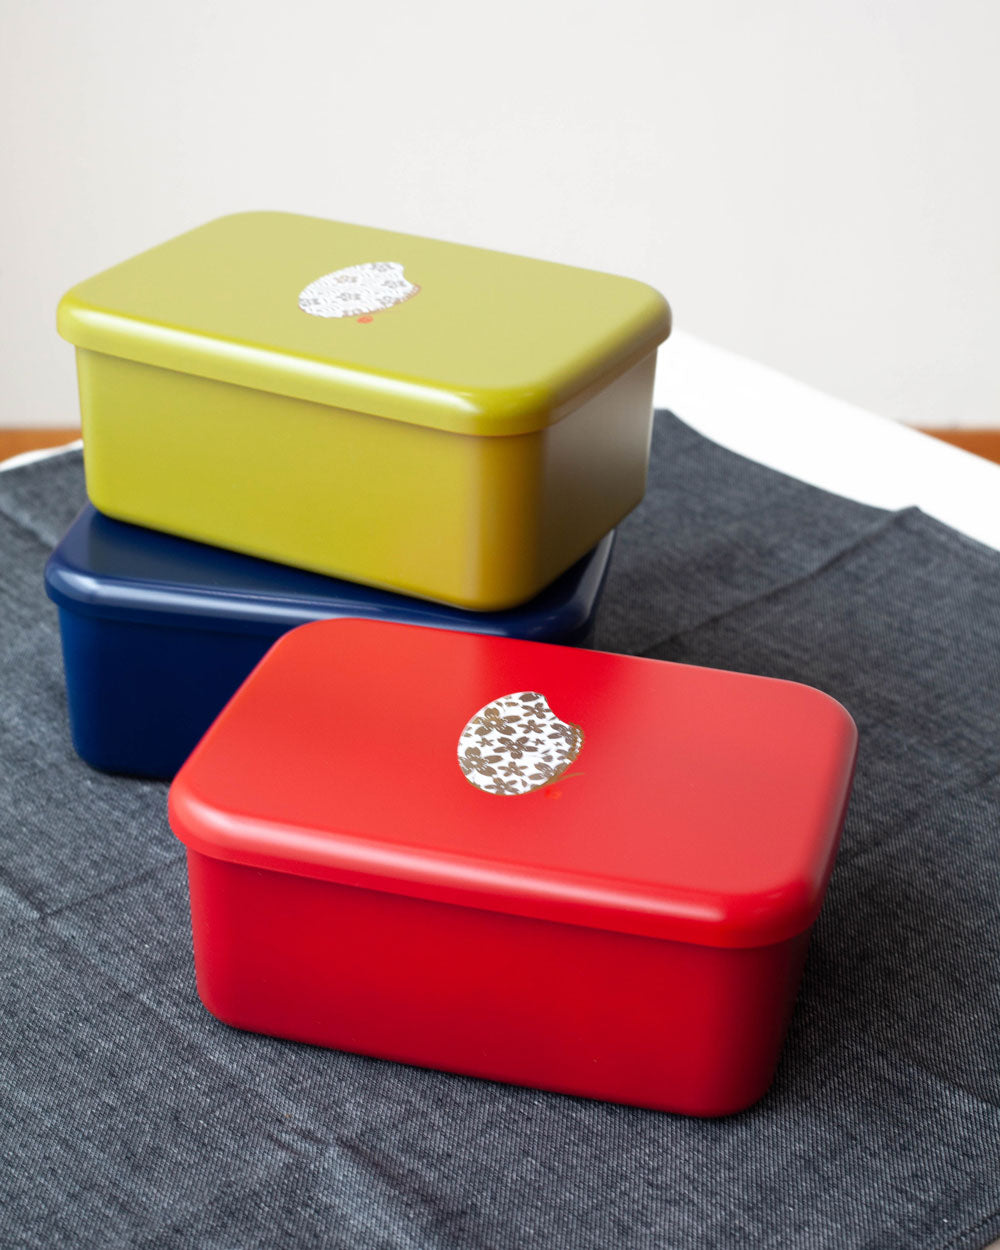 Komemon Lacquer Rectangle Bento Box | Red by Hakoya - Bento&co Japanese Bento Lunch Boxes and Kitchenware Specialists